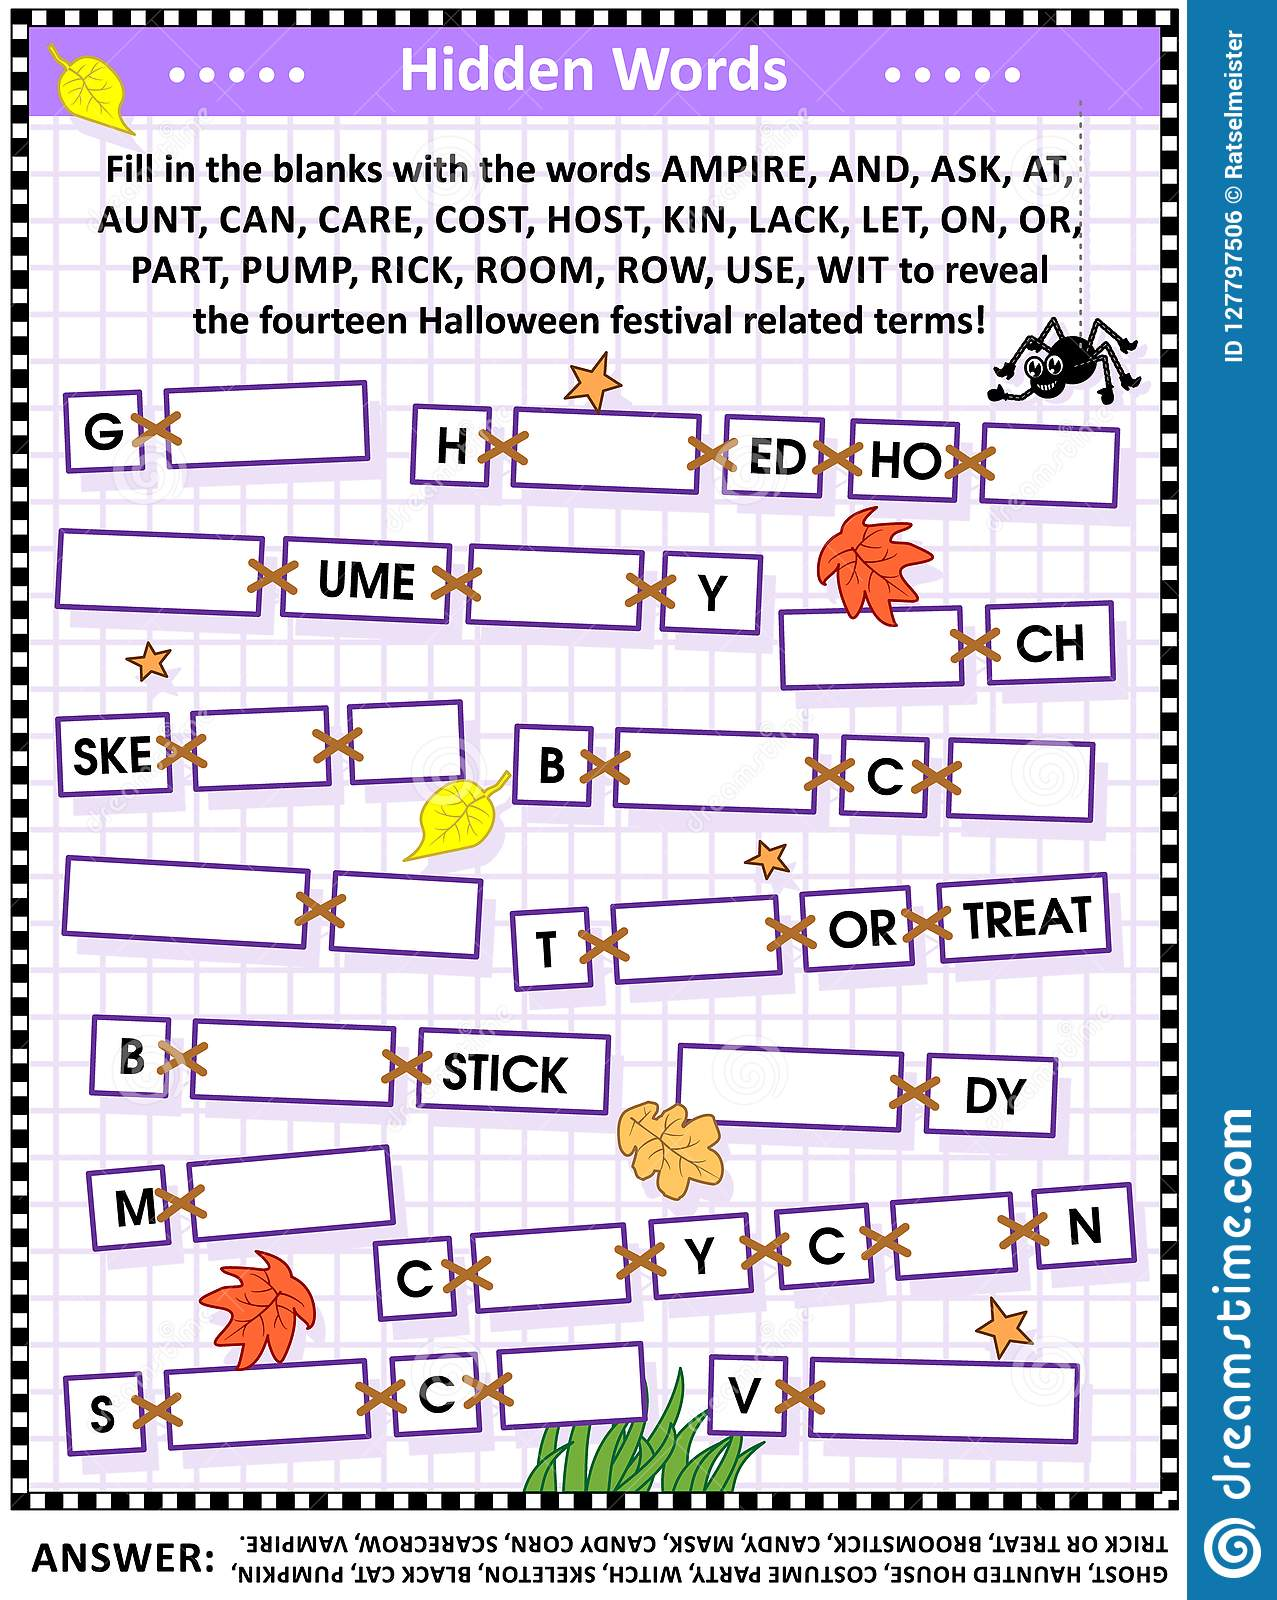 Word Puzzle Or Word Game With Halloween Festival Terms